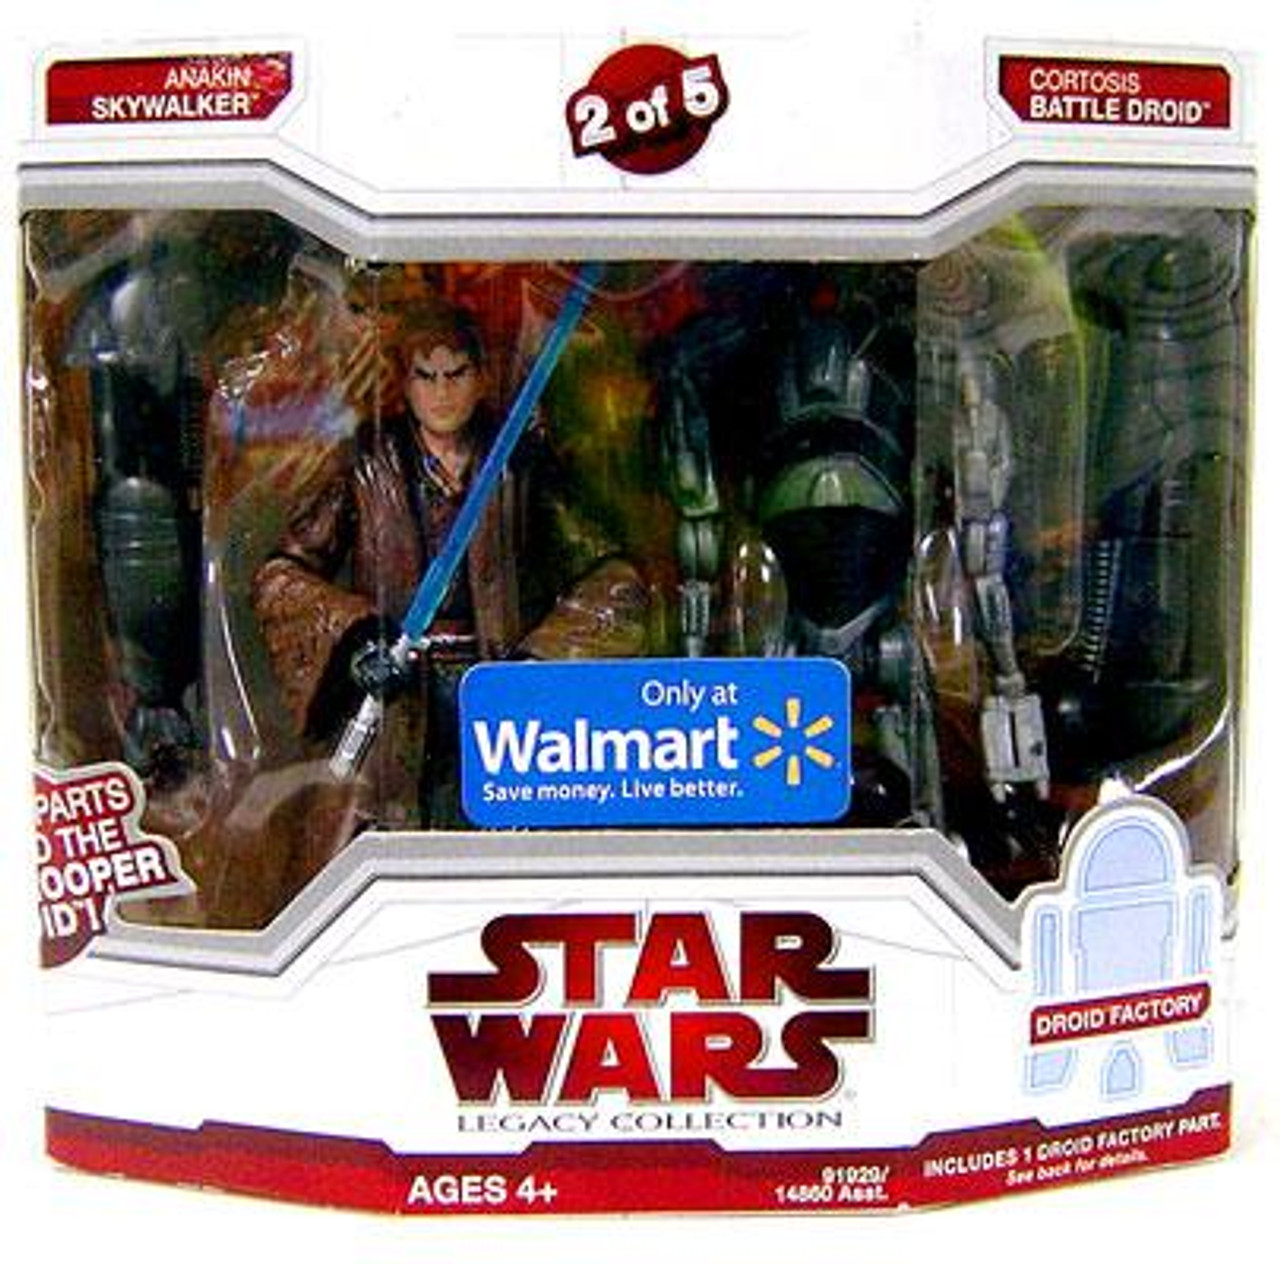 Star Wars The Clone Wars Legacy Collection 2009 Droid Factory Anakin Skywalker & Cortosis Battle Droid Exclusive Action Figure 2-Pack #2 of 5